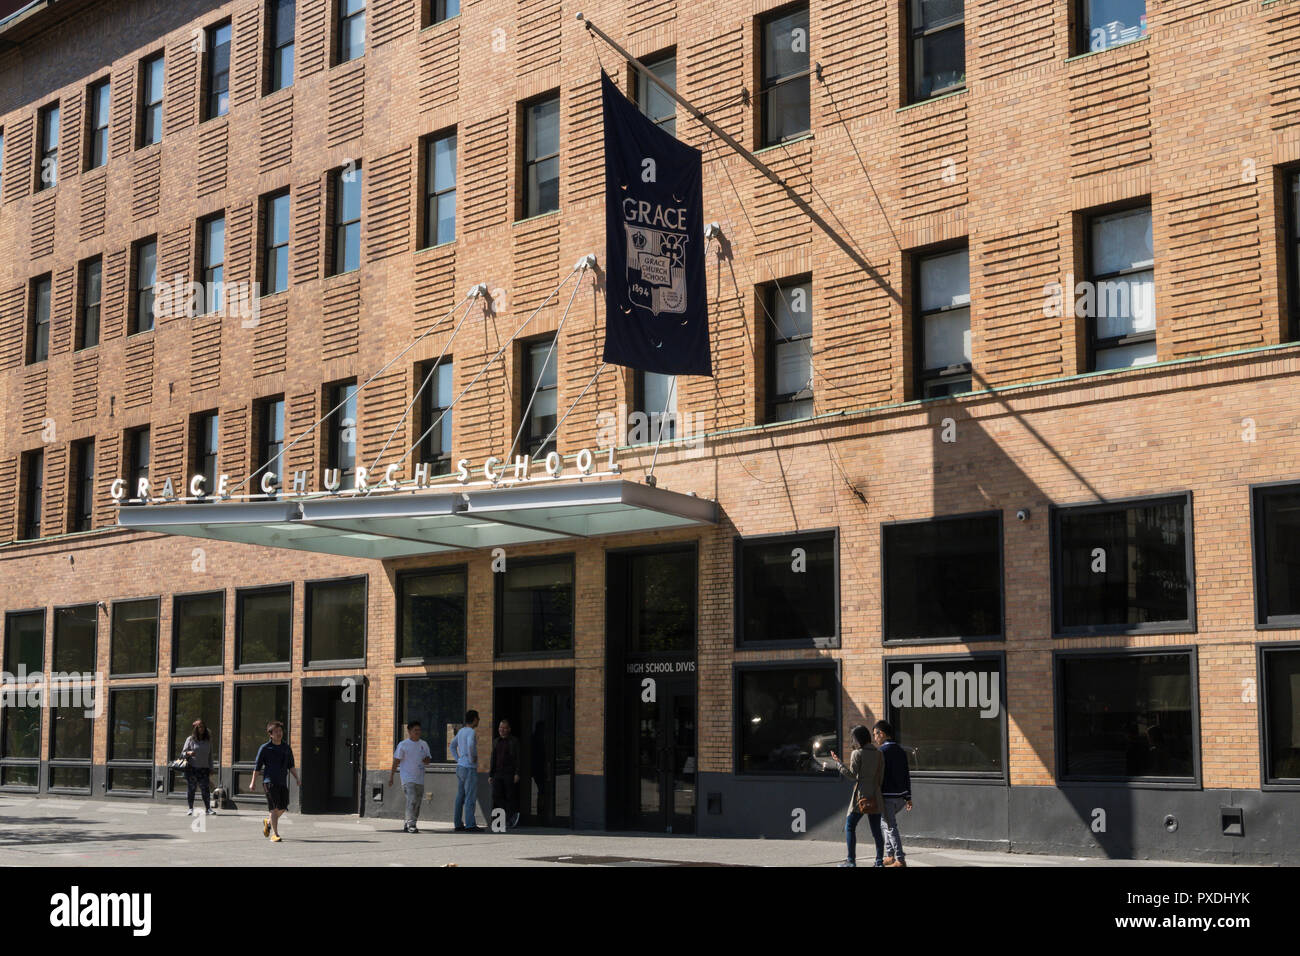 Grace Church School building facade in the East Village, NYC, USA - Stock Image